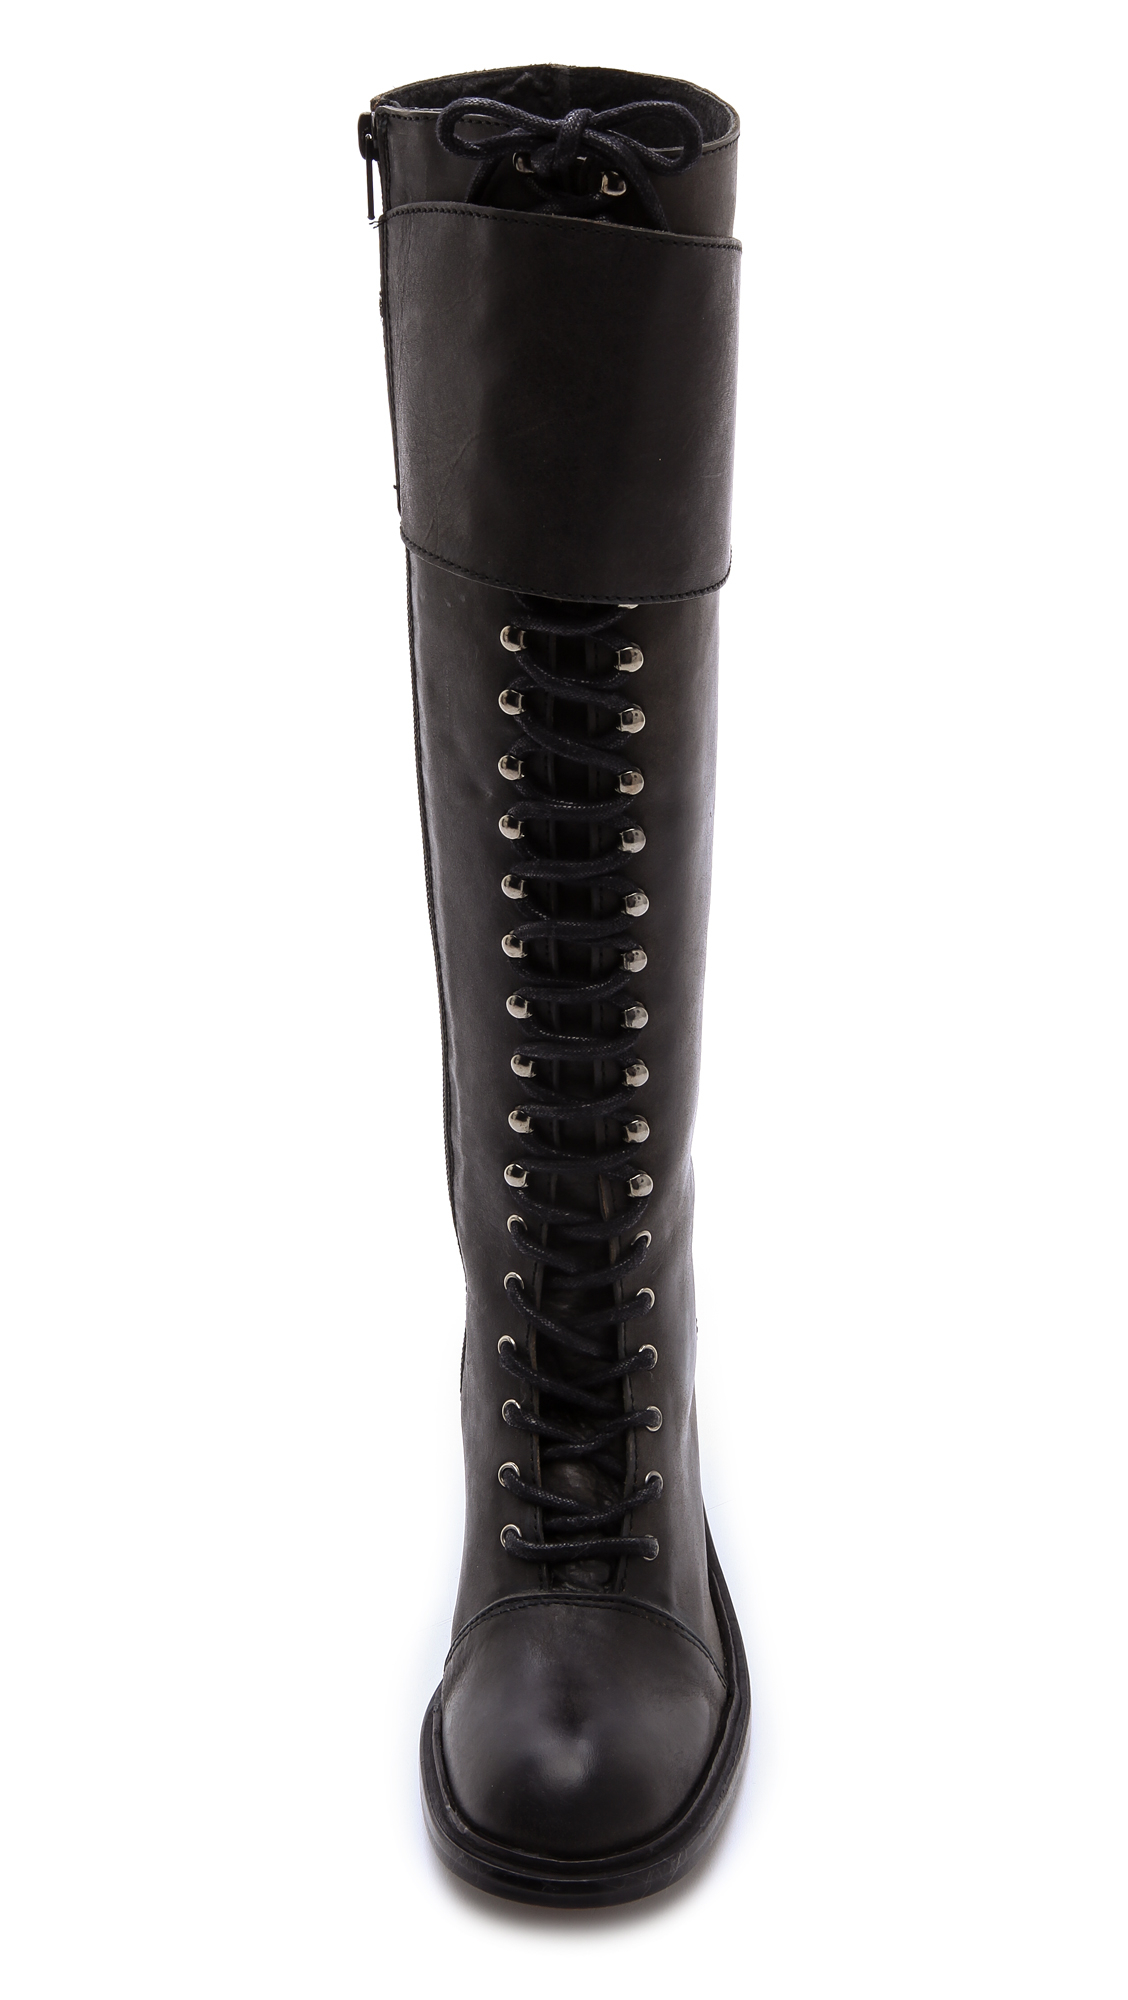 Jeffrey campbell Tall Combat Boots - Black in Black   Lyst